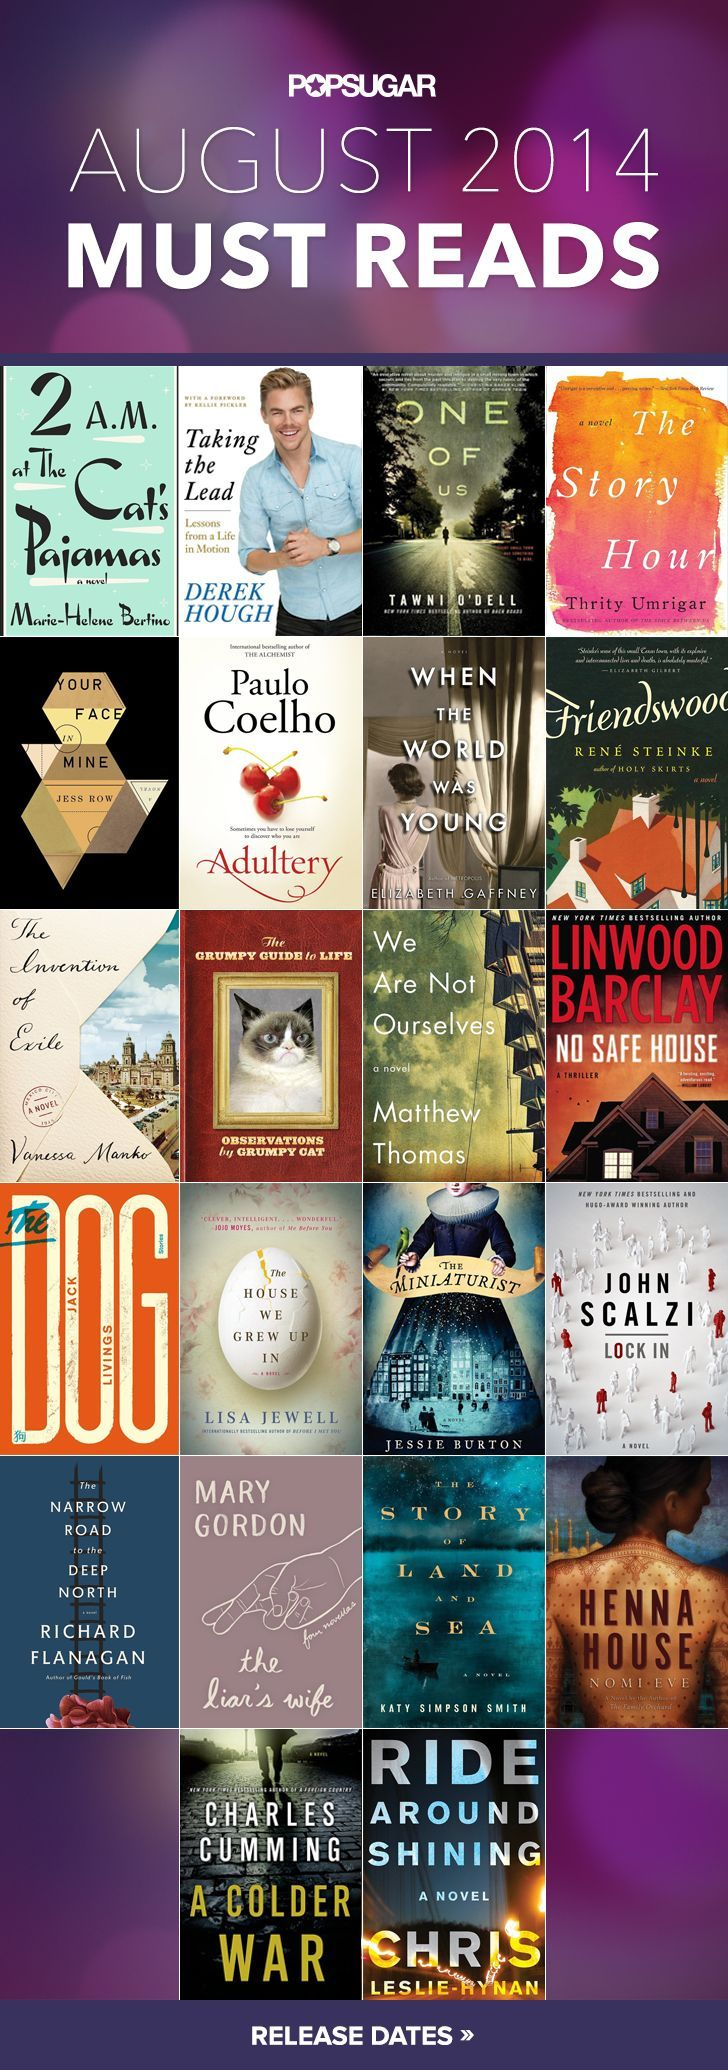 August 2014 Must Read Books, Challenge Your Self, Read A New Writer Each  Month